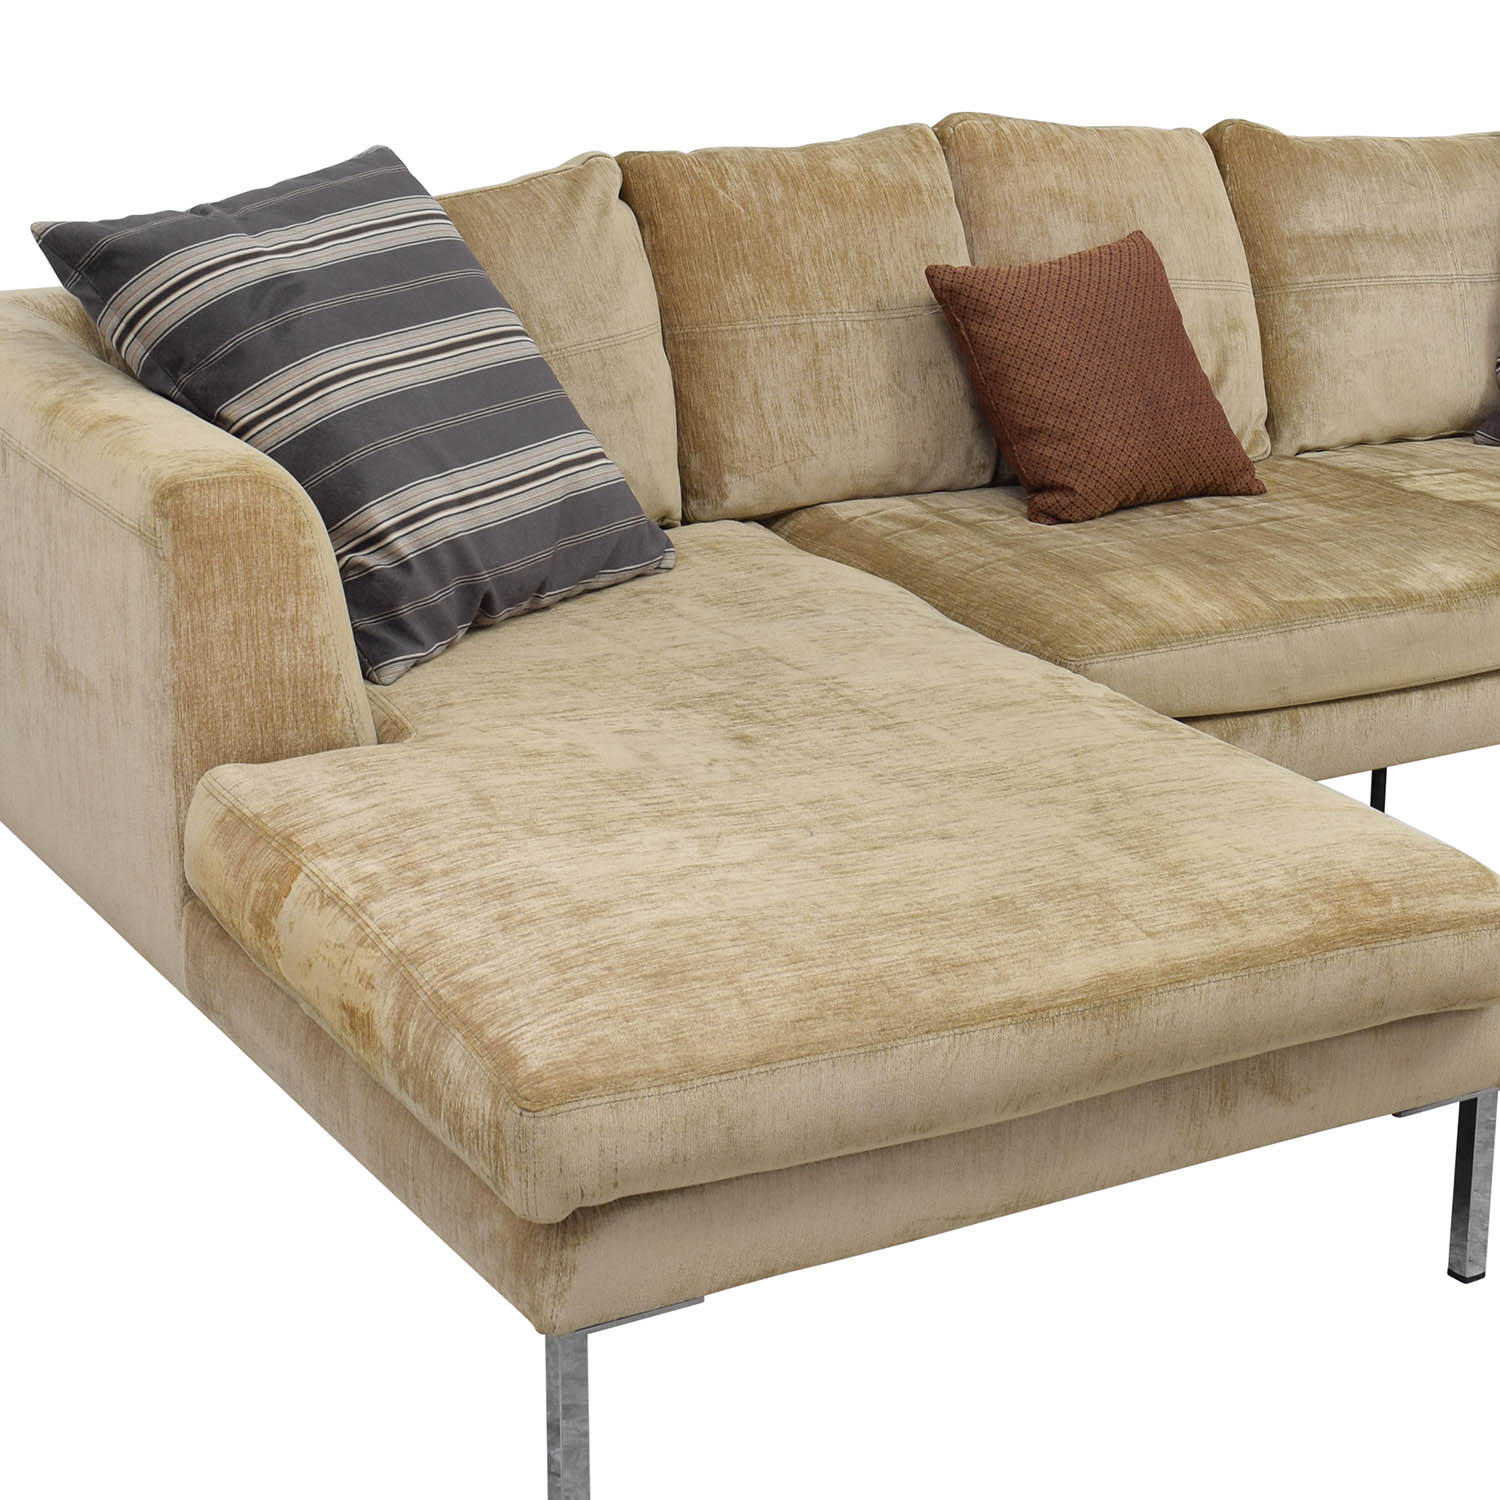 ... buy Modani Beige Sectional Sofa Modani ...  sc 1 st  Furnishare : modani sectional - Sectionals, Sofas & Couches